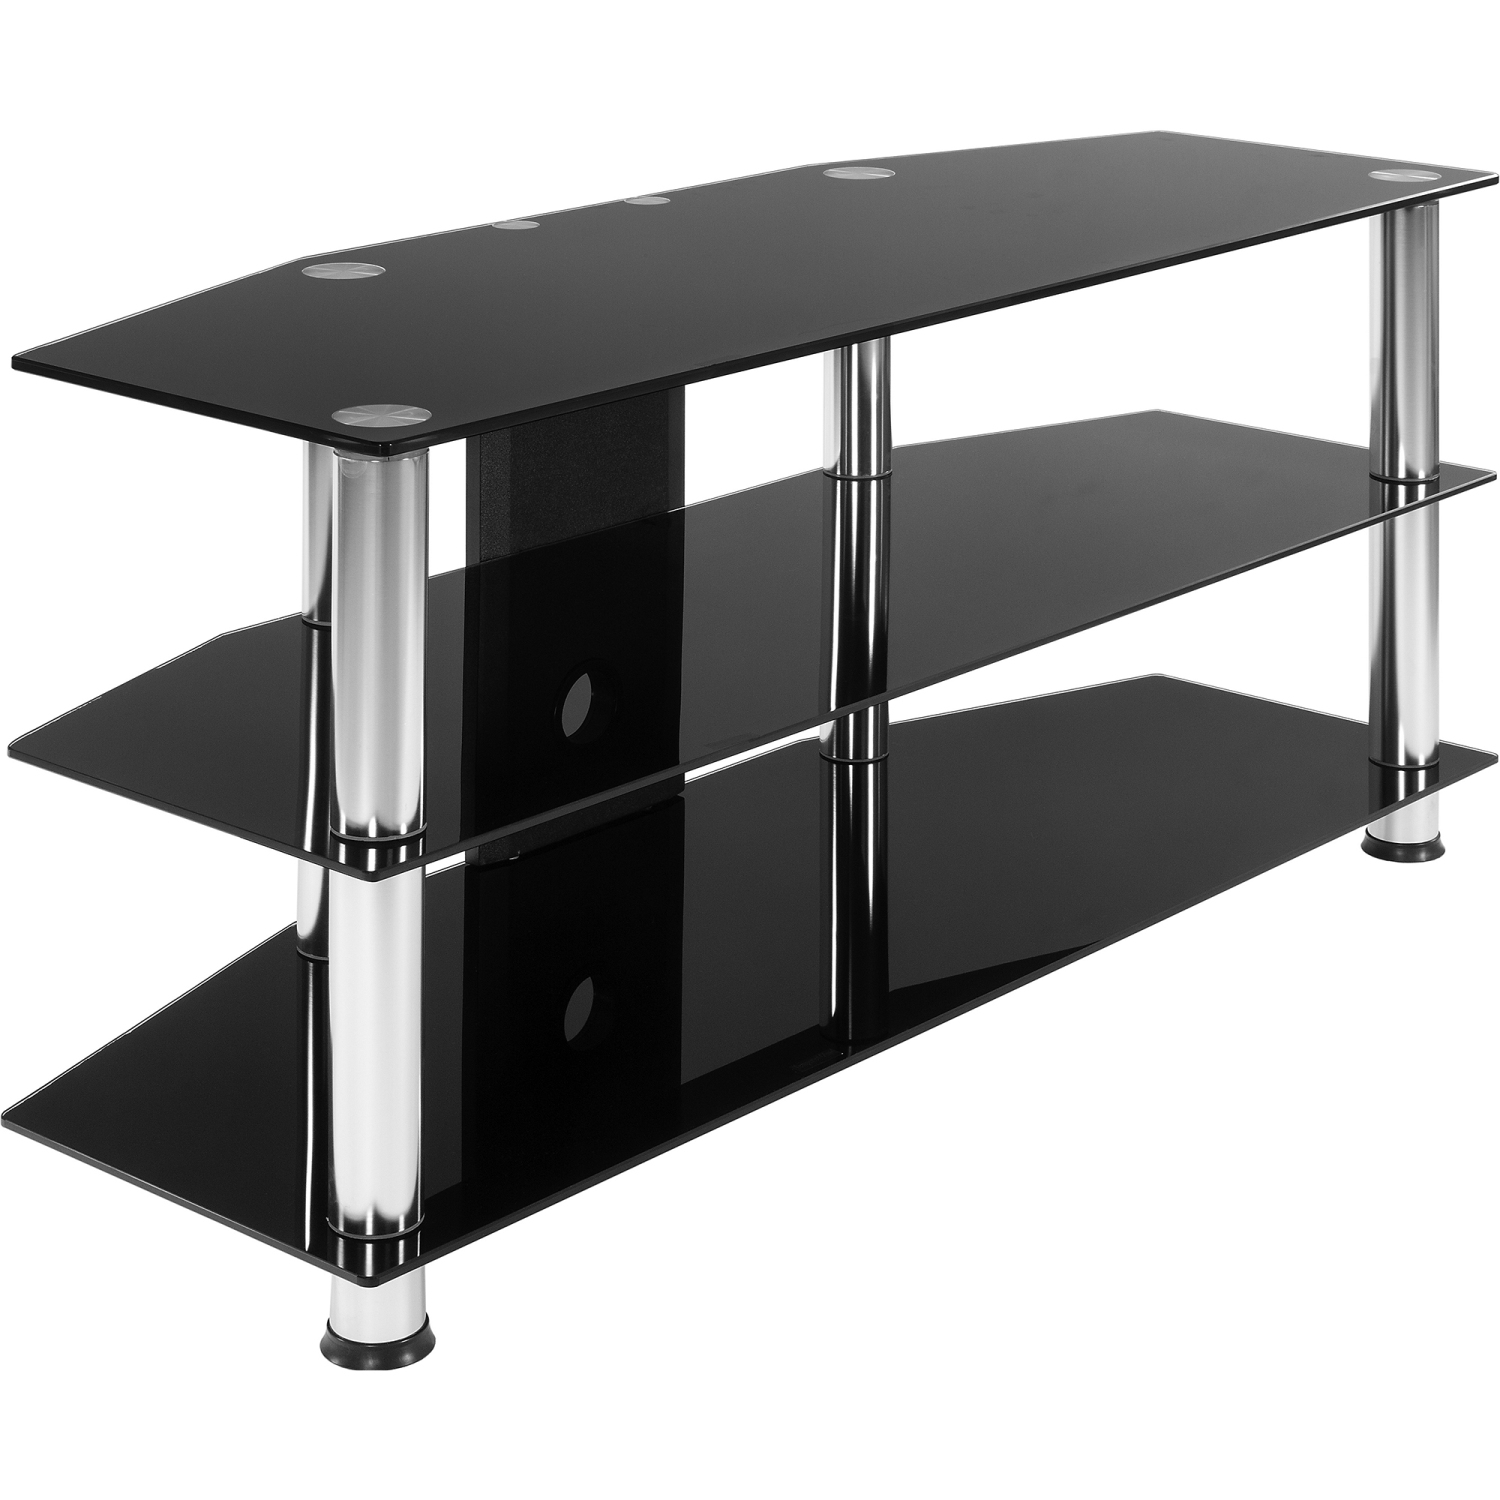 stilista tv rack tisch fernsehtisch hifi m bel schwarz glas schwarzglas. Black Bedroom Furniture Sets. Home Design Ideas